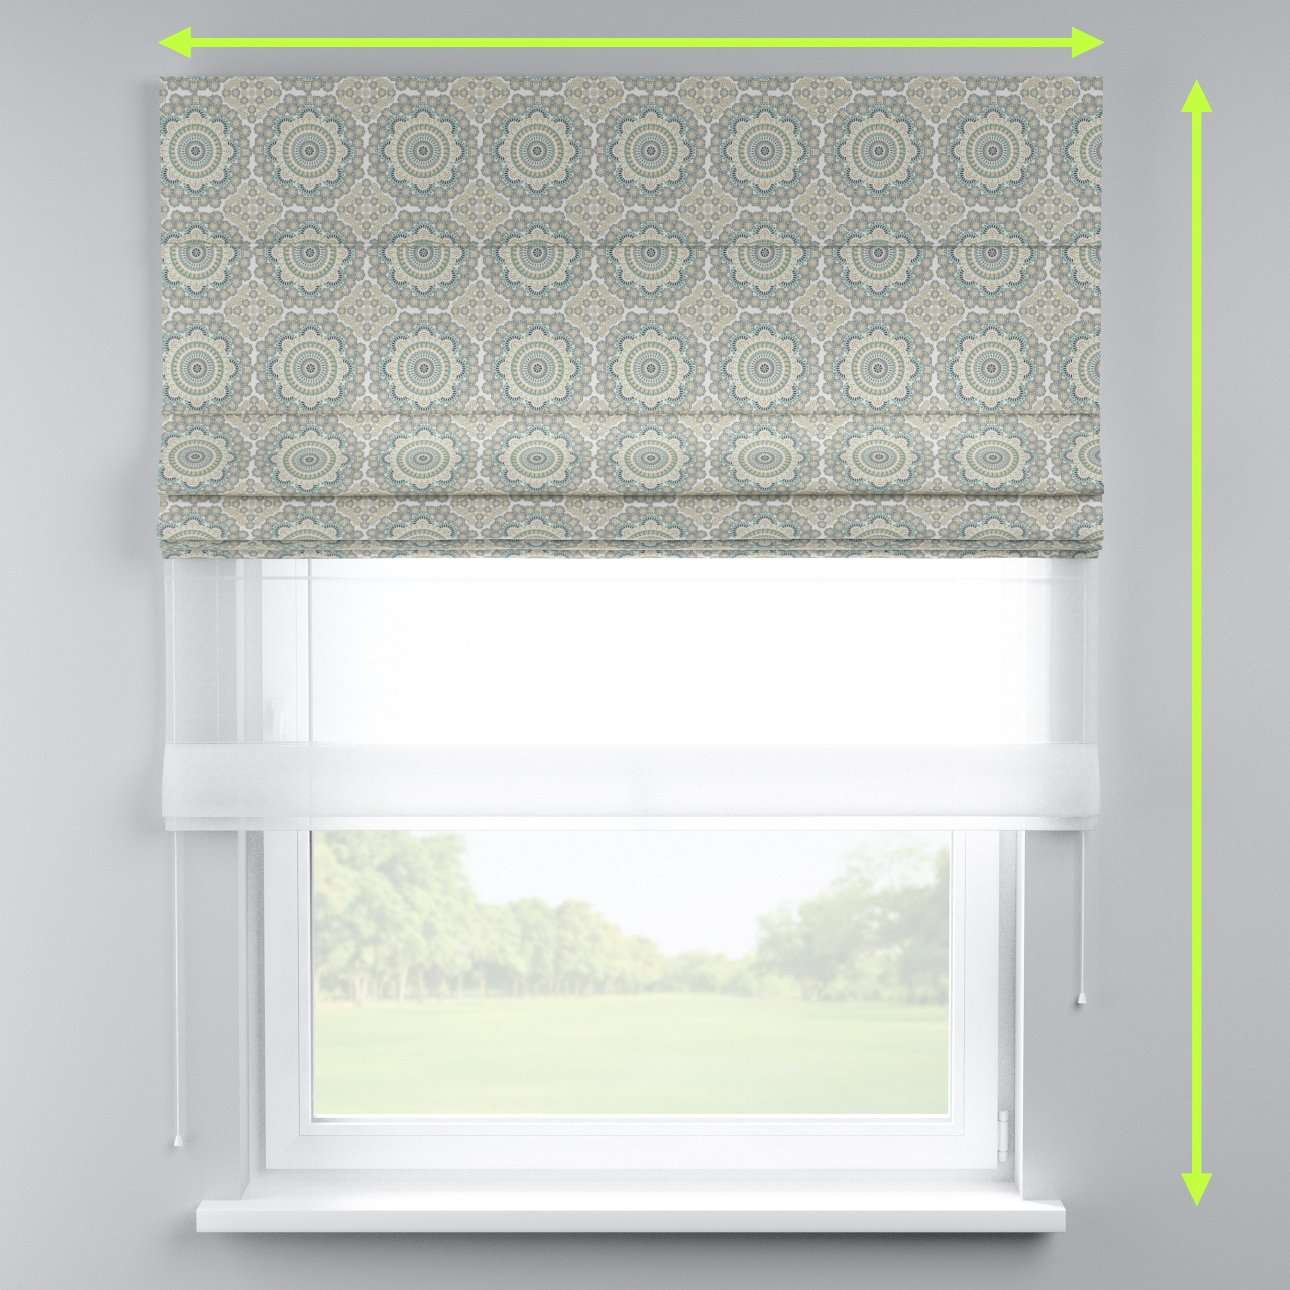 Voile and fabric roman blind (DUO II) in collection Comic Book & Geo Prints, fabric: 137-84